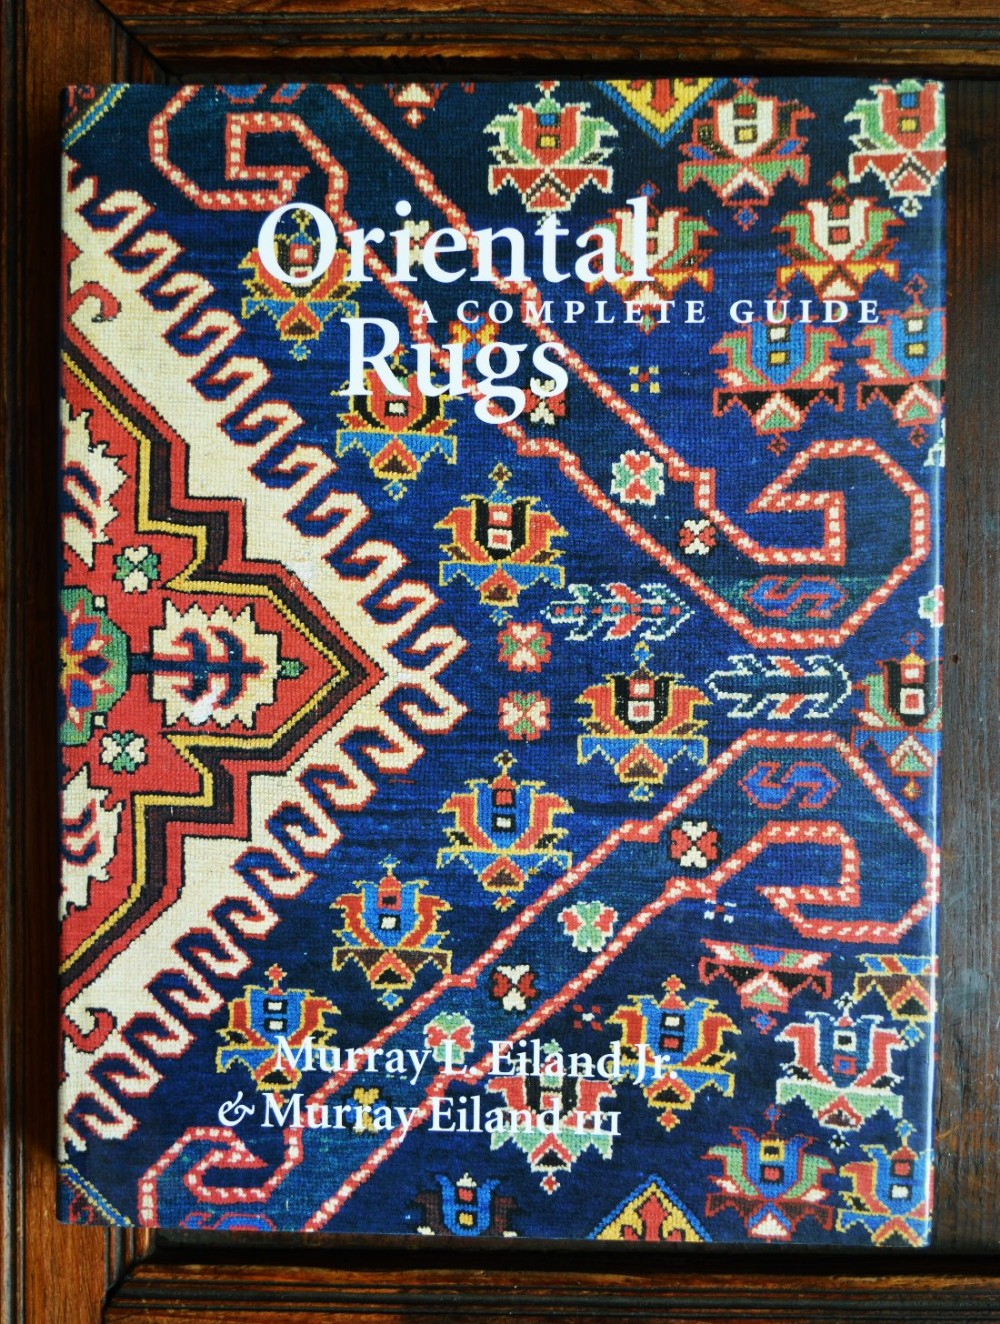 'oriental rugs a complete guide' by murray eiland